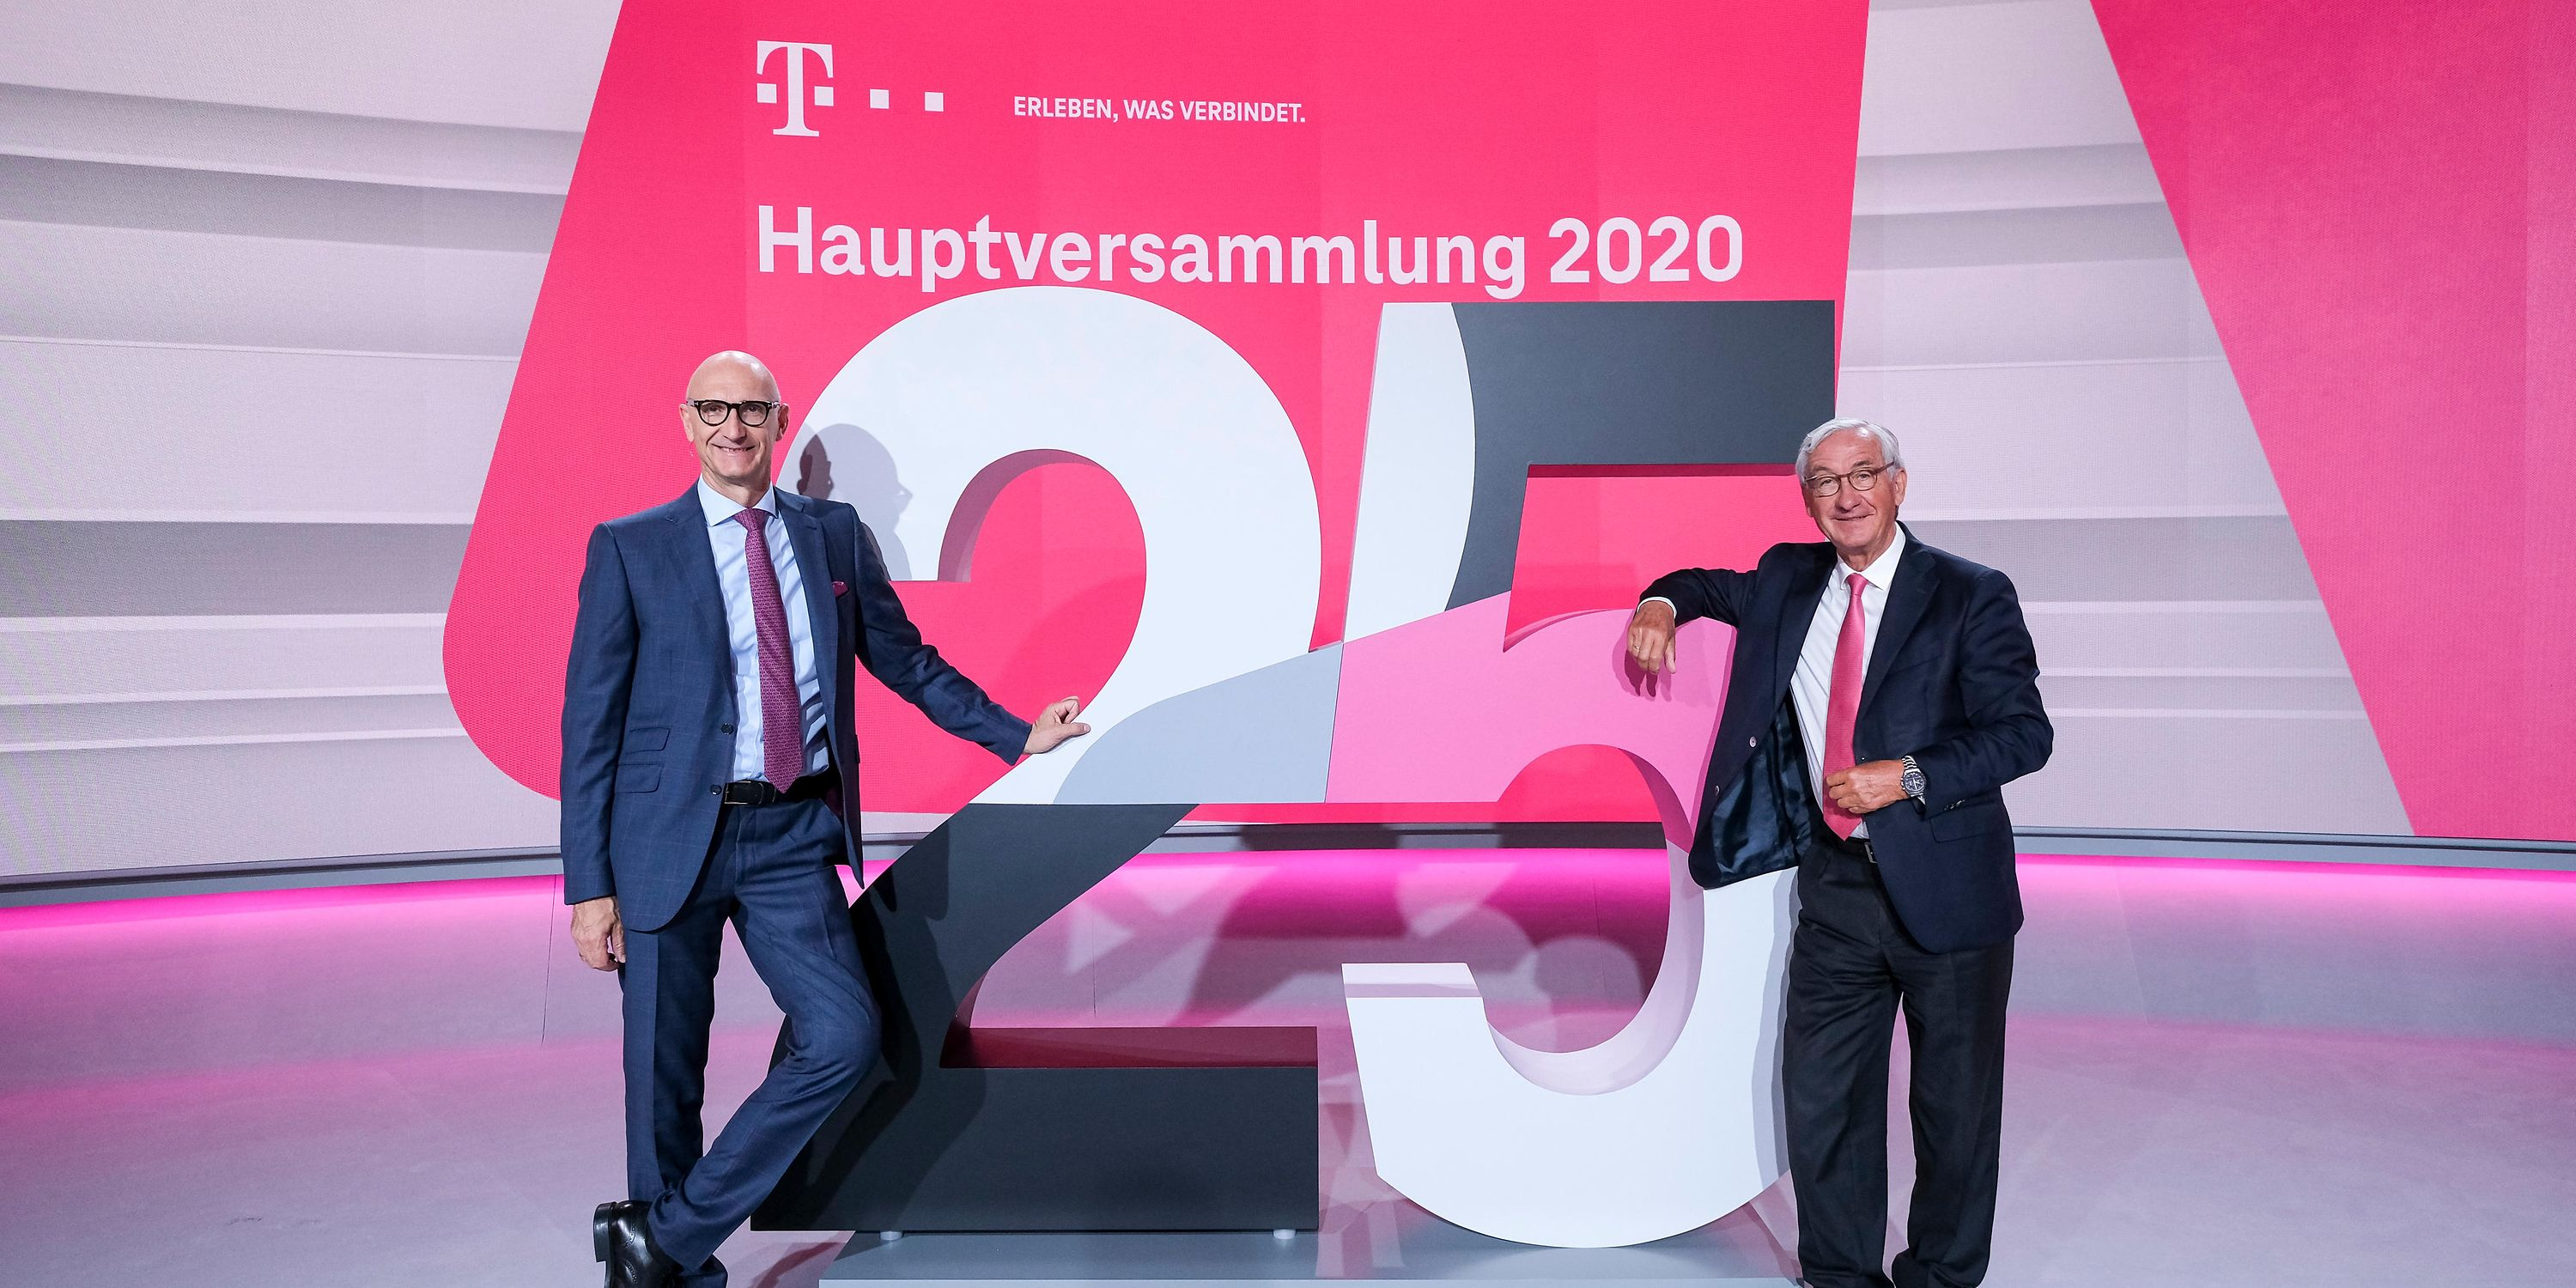 CEO Timotheus Höttges (left) and Ulrich Lehner, chairman of the supervisory board.